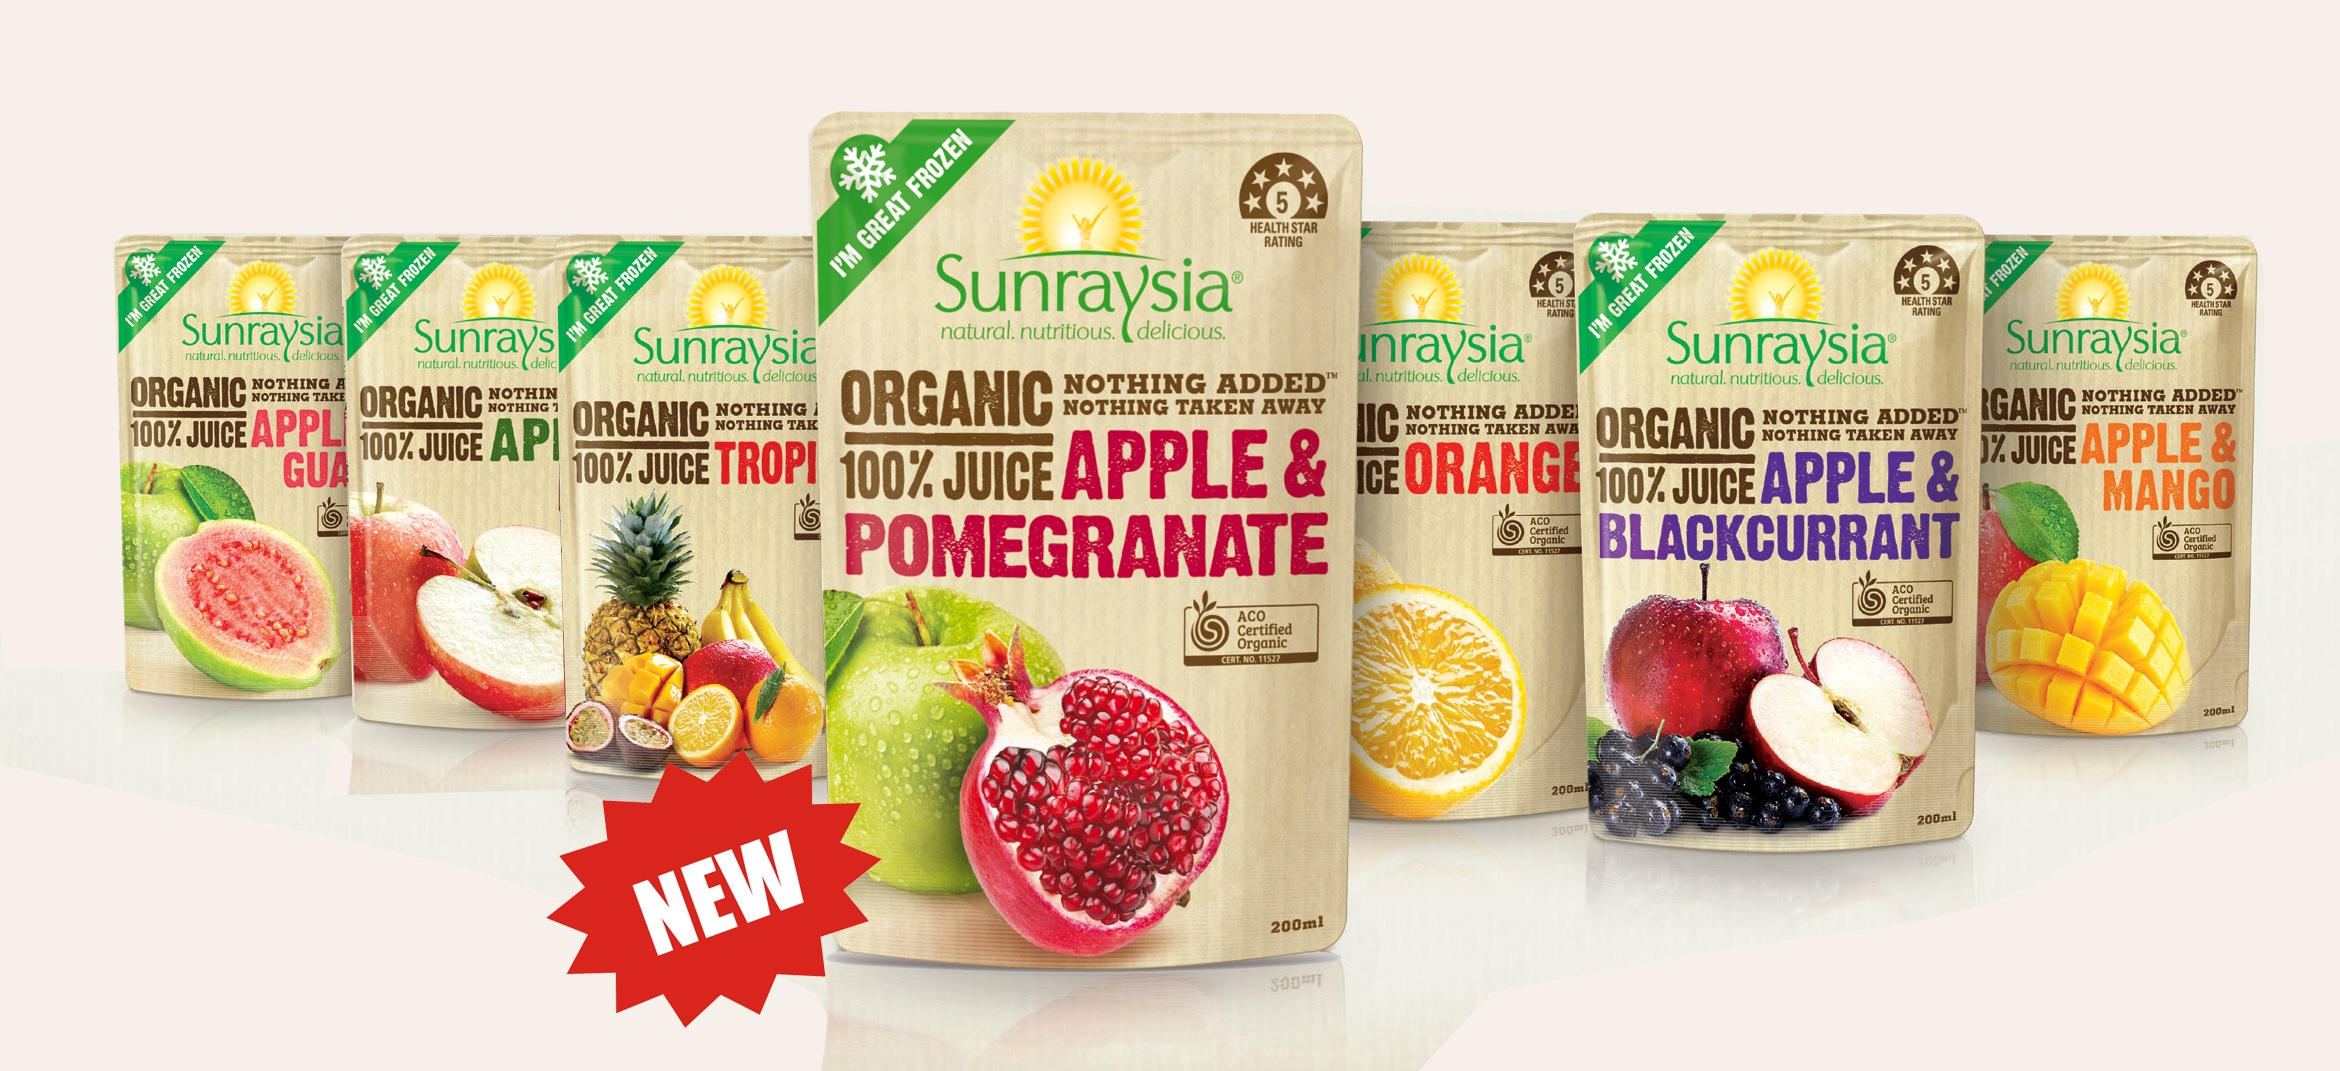 Sunraysia+Product+Range+Apple+Pom+NEW1.jpg